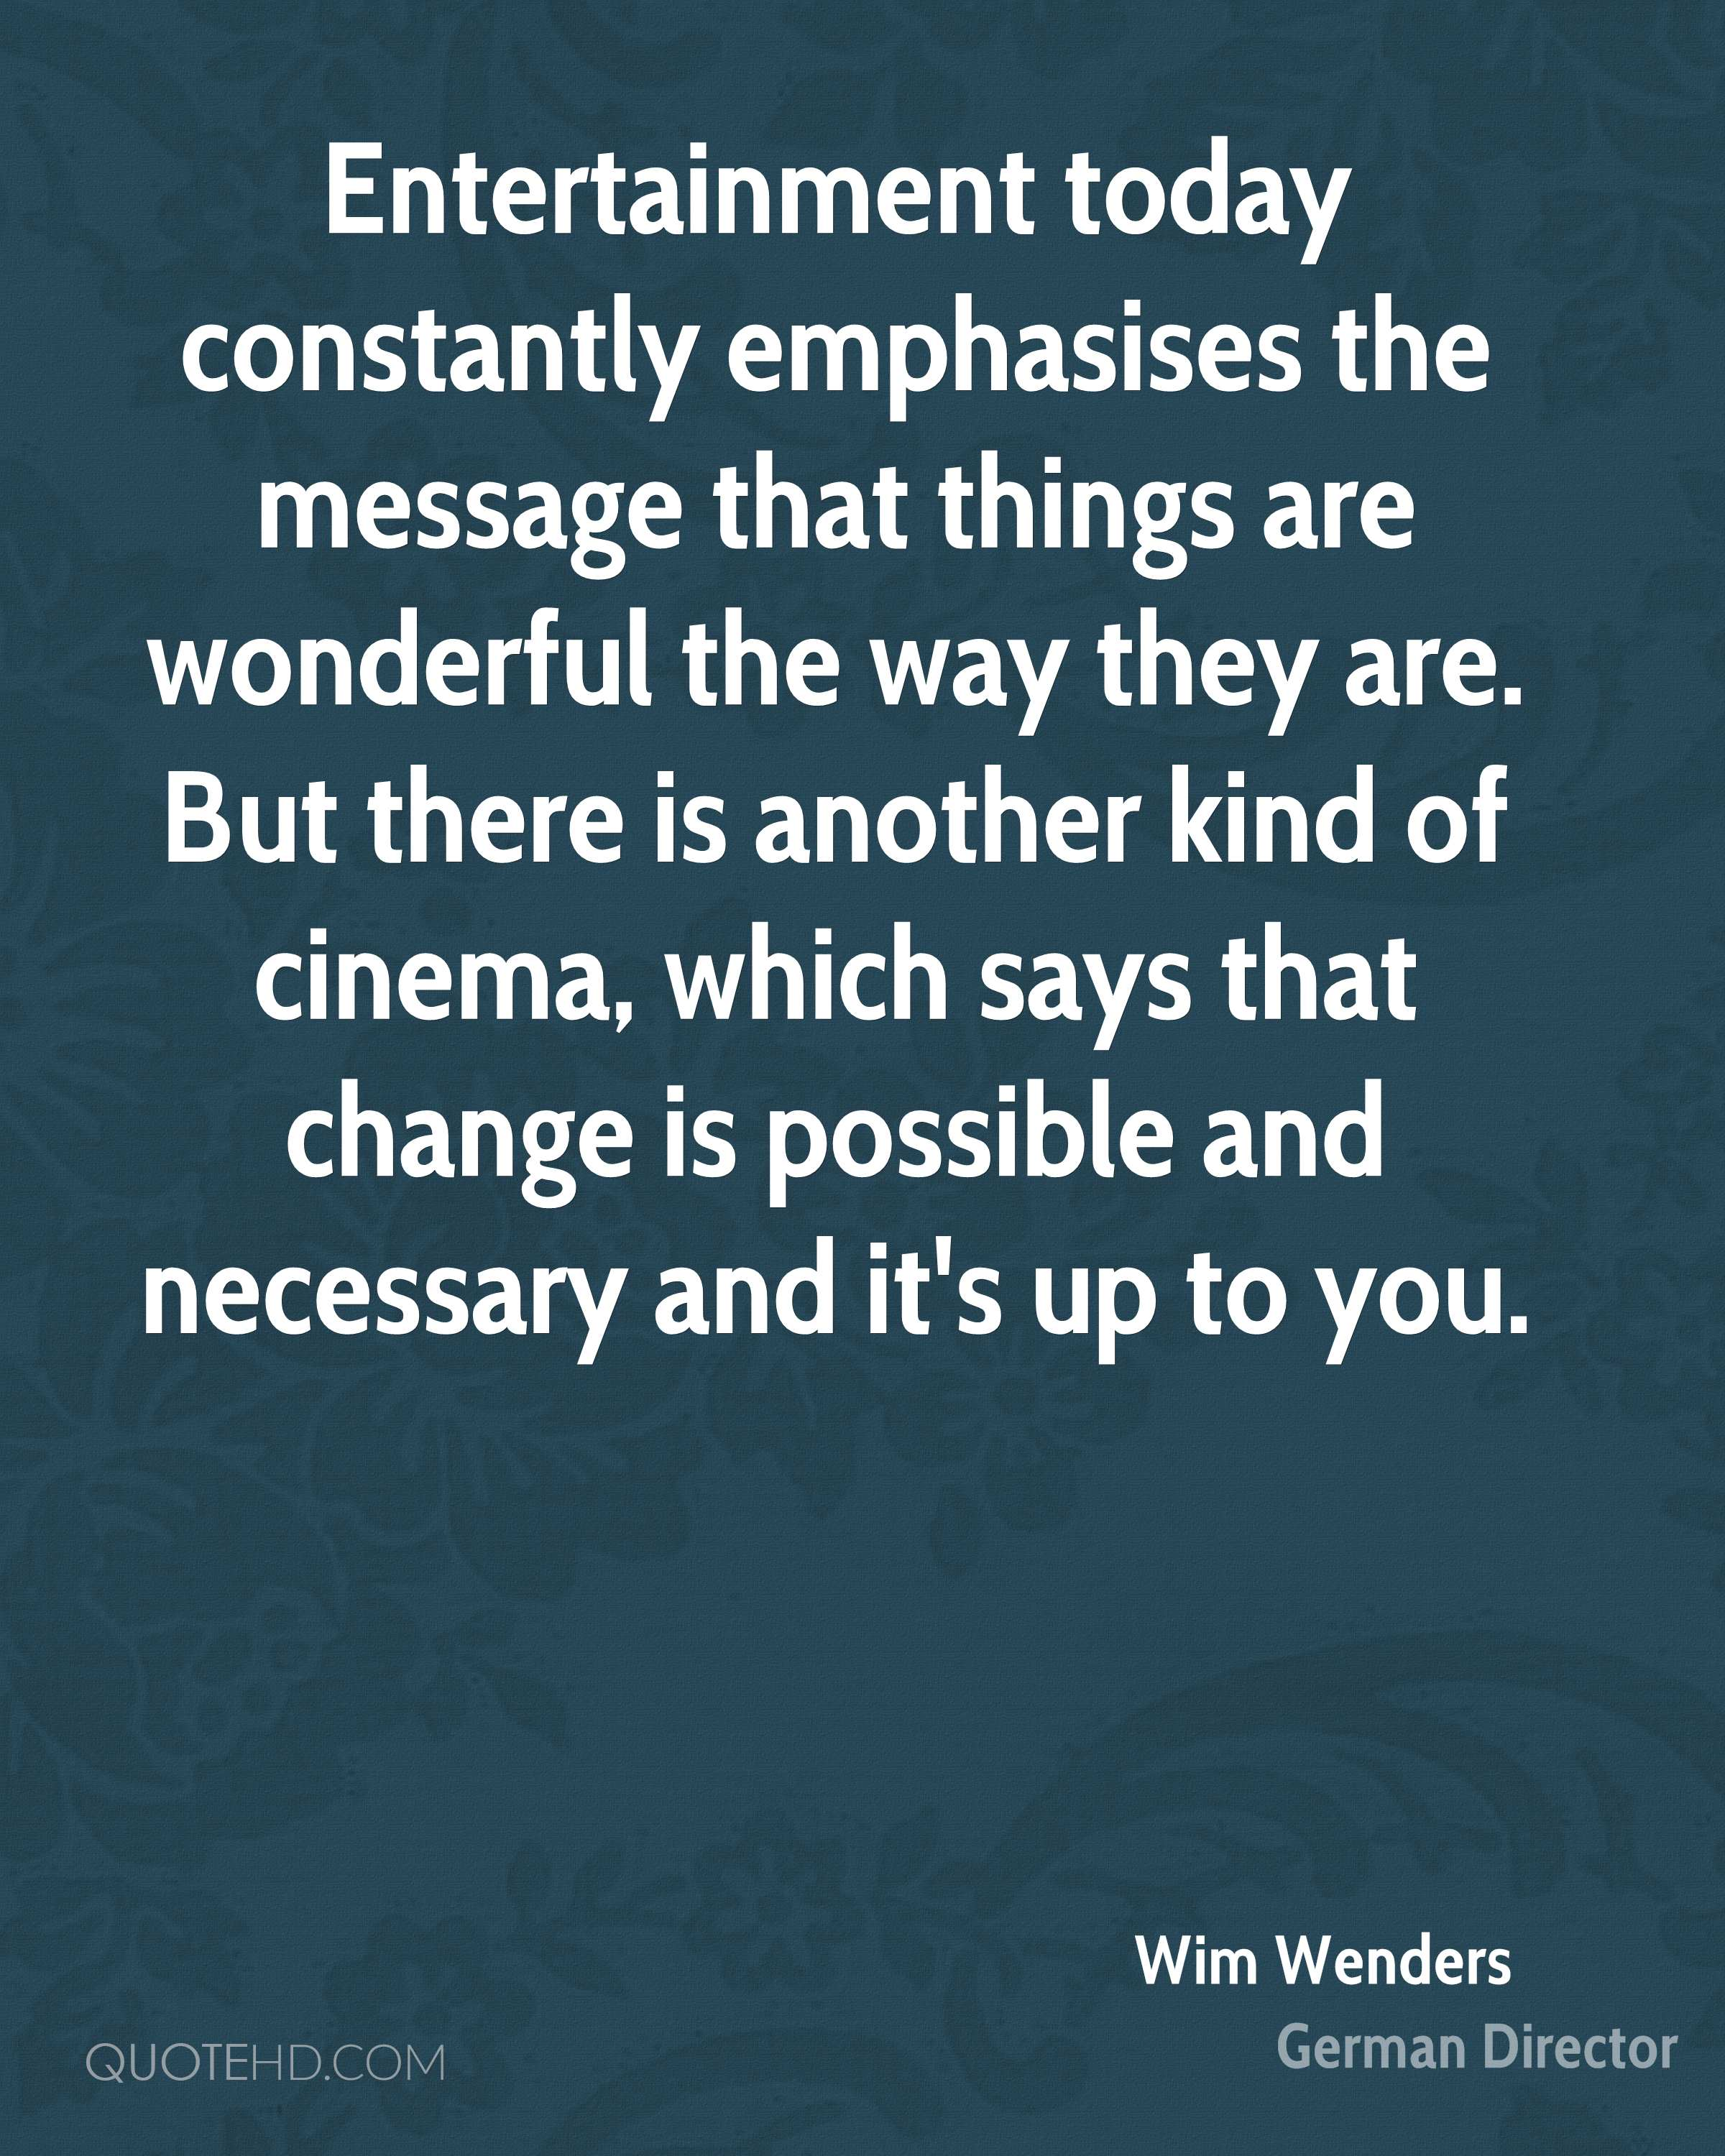 Entertainment today constantly emphasises the message that things are wonderful the way they are. But there is another kind of cinema, which says that change is possible and necessary and it's up to you.